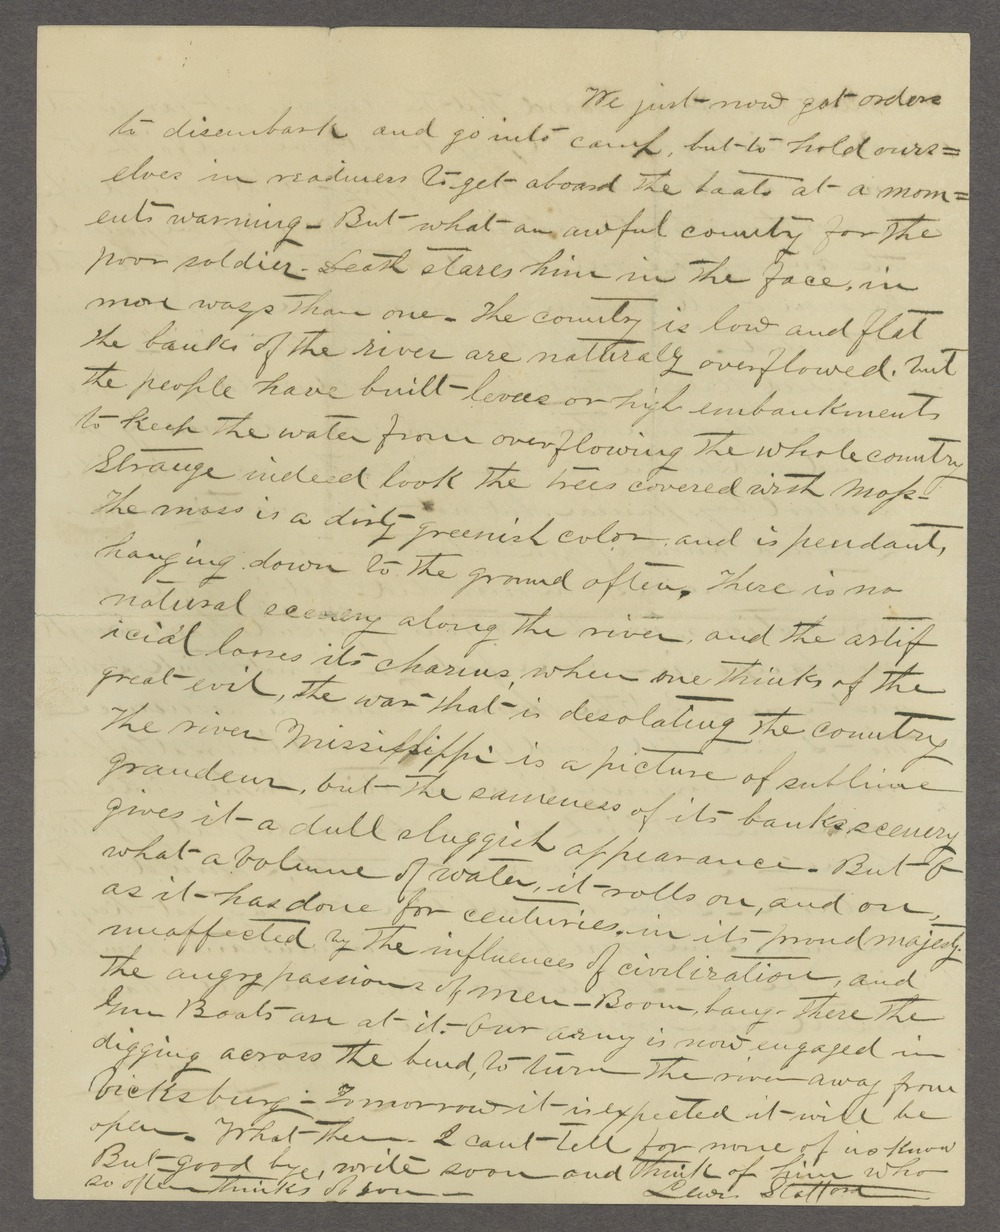 Lewis Stafford to Kate Newland correspondence - 156